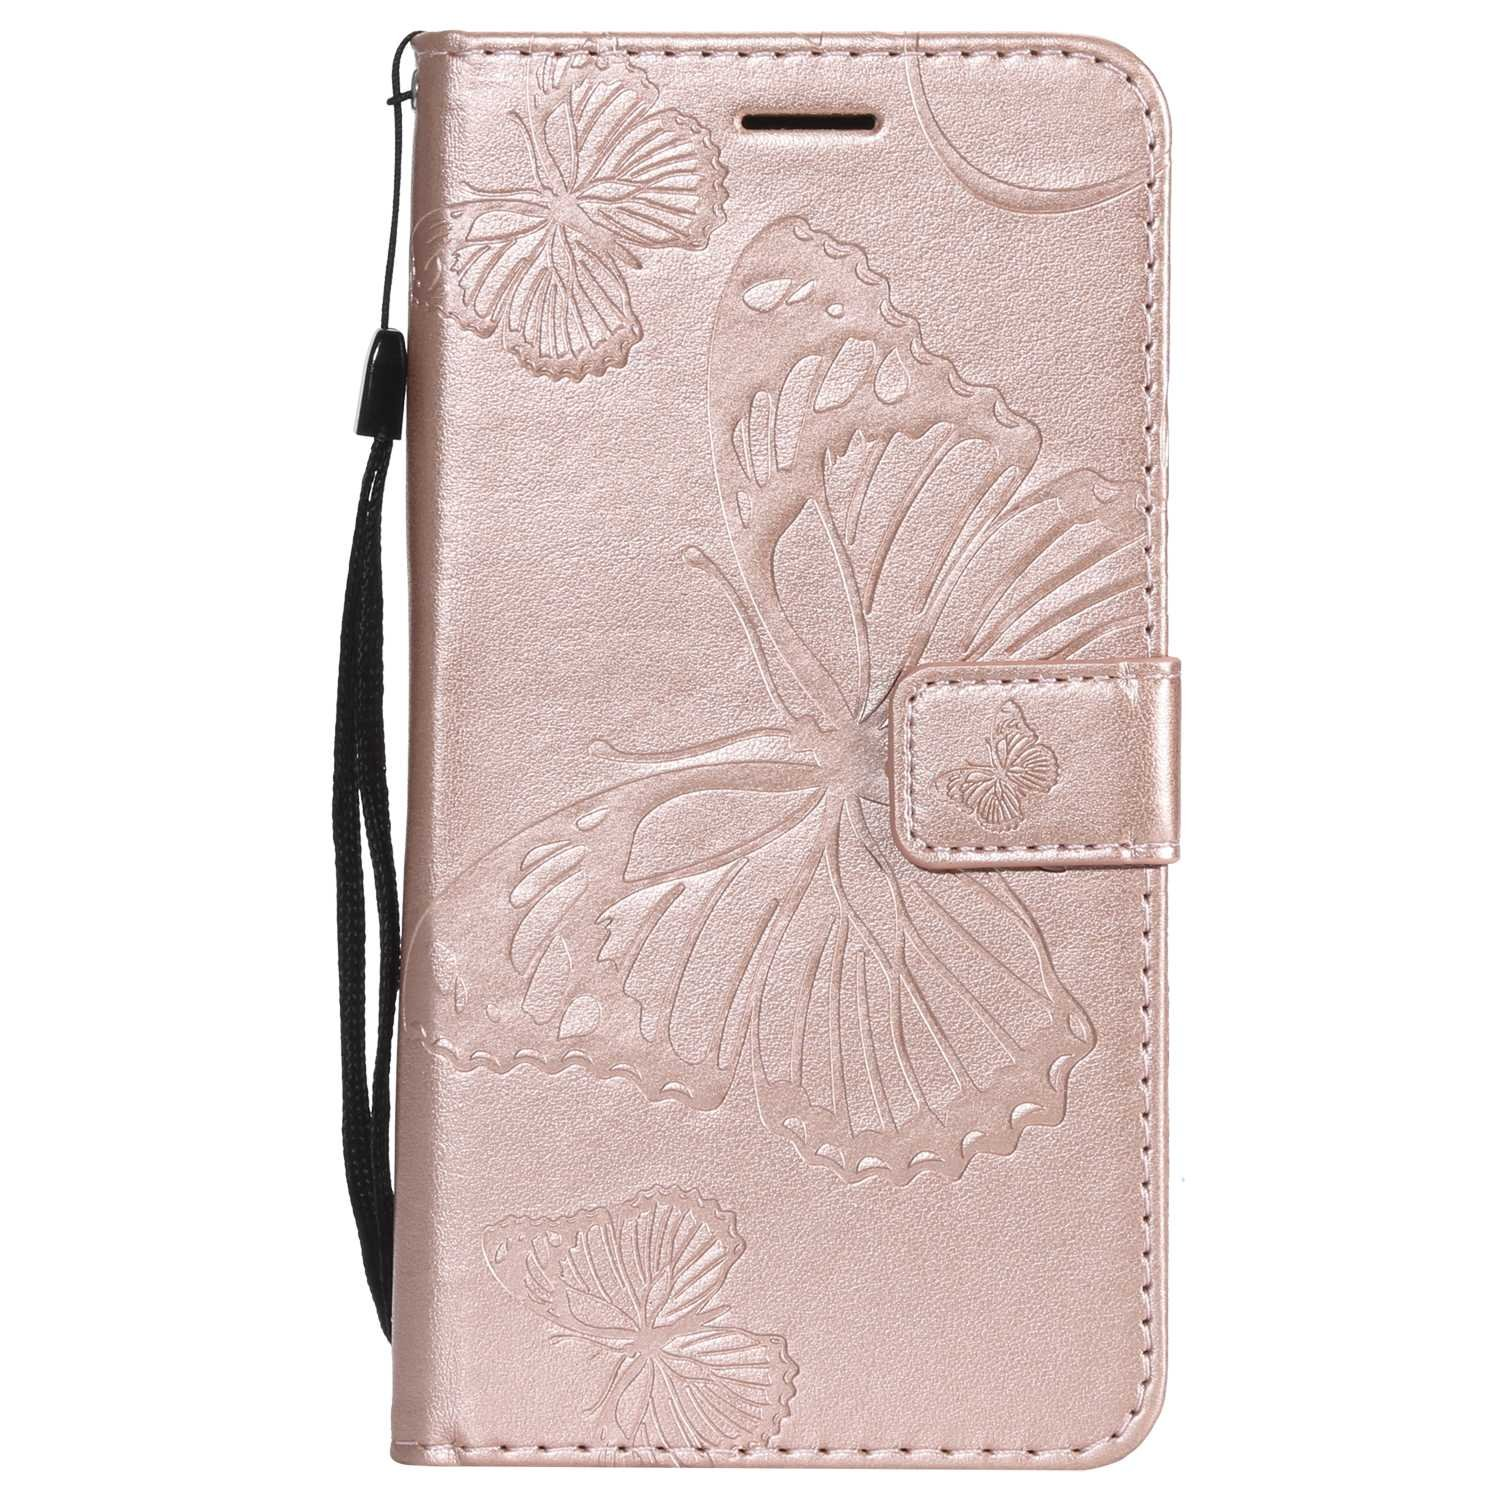 CUSKING Case for Samsung Galaxy J7 2016, Leather Flip Cover Magnetic Wallet Case with Butterfly Embossed Design, Case with Card Holders and Kickstand - Rose Gold